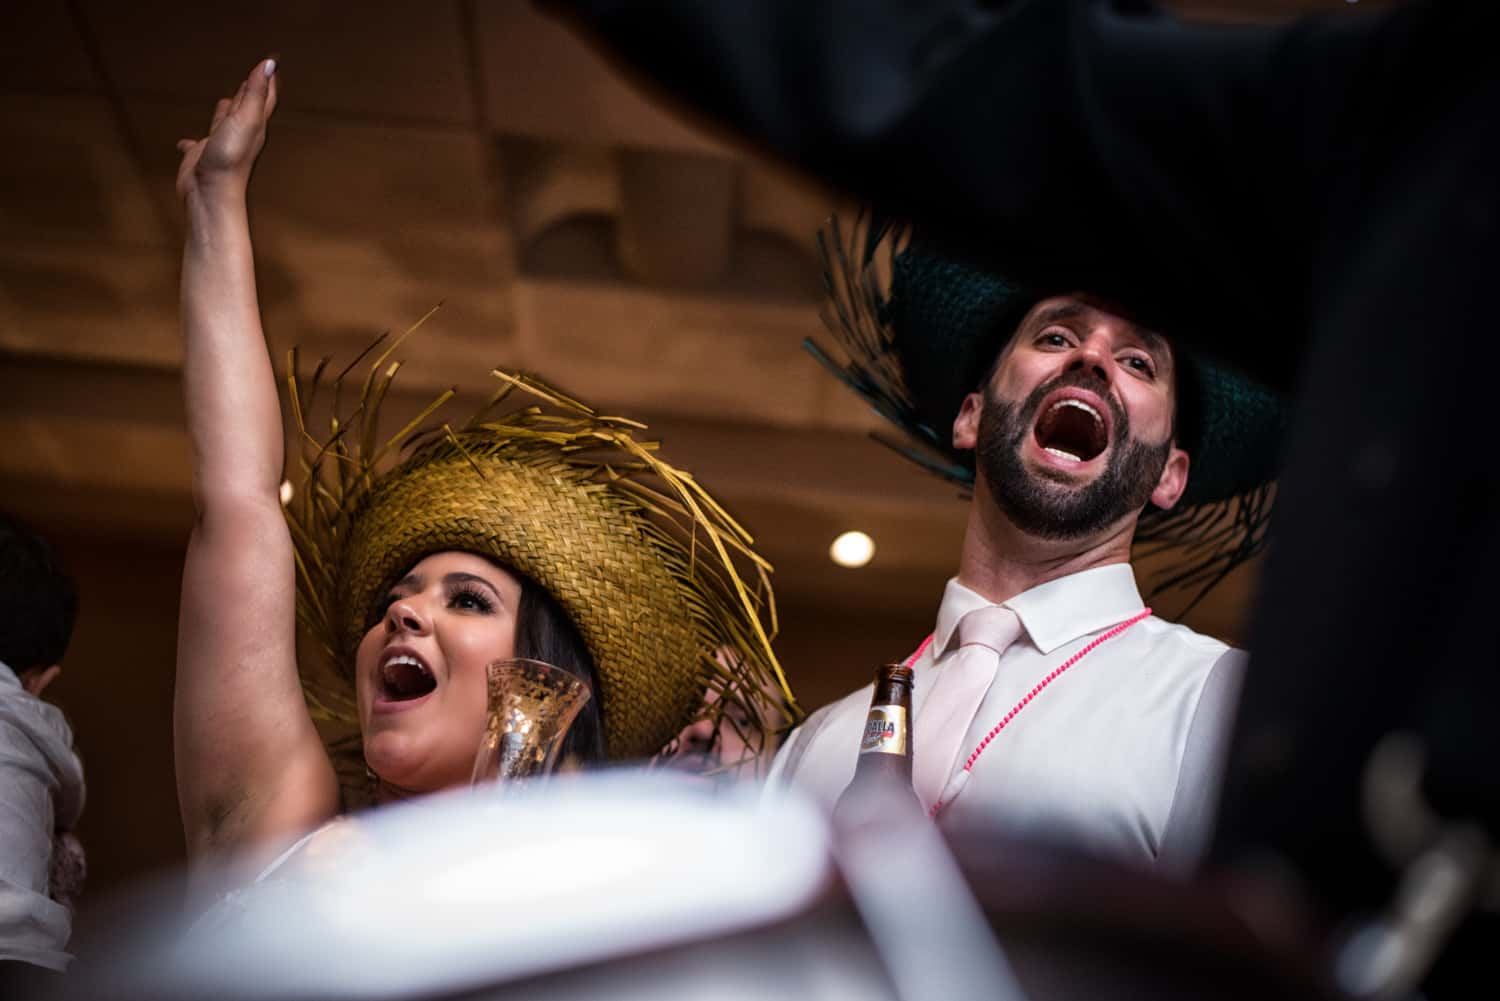 Bride and groom cheering